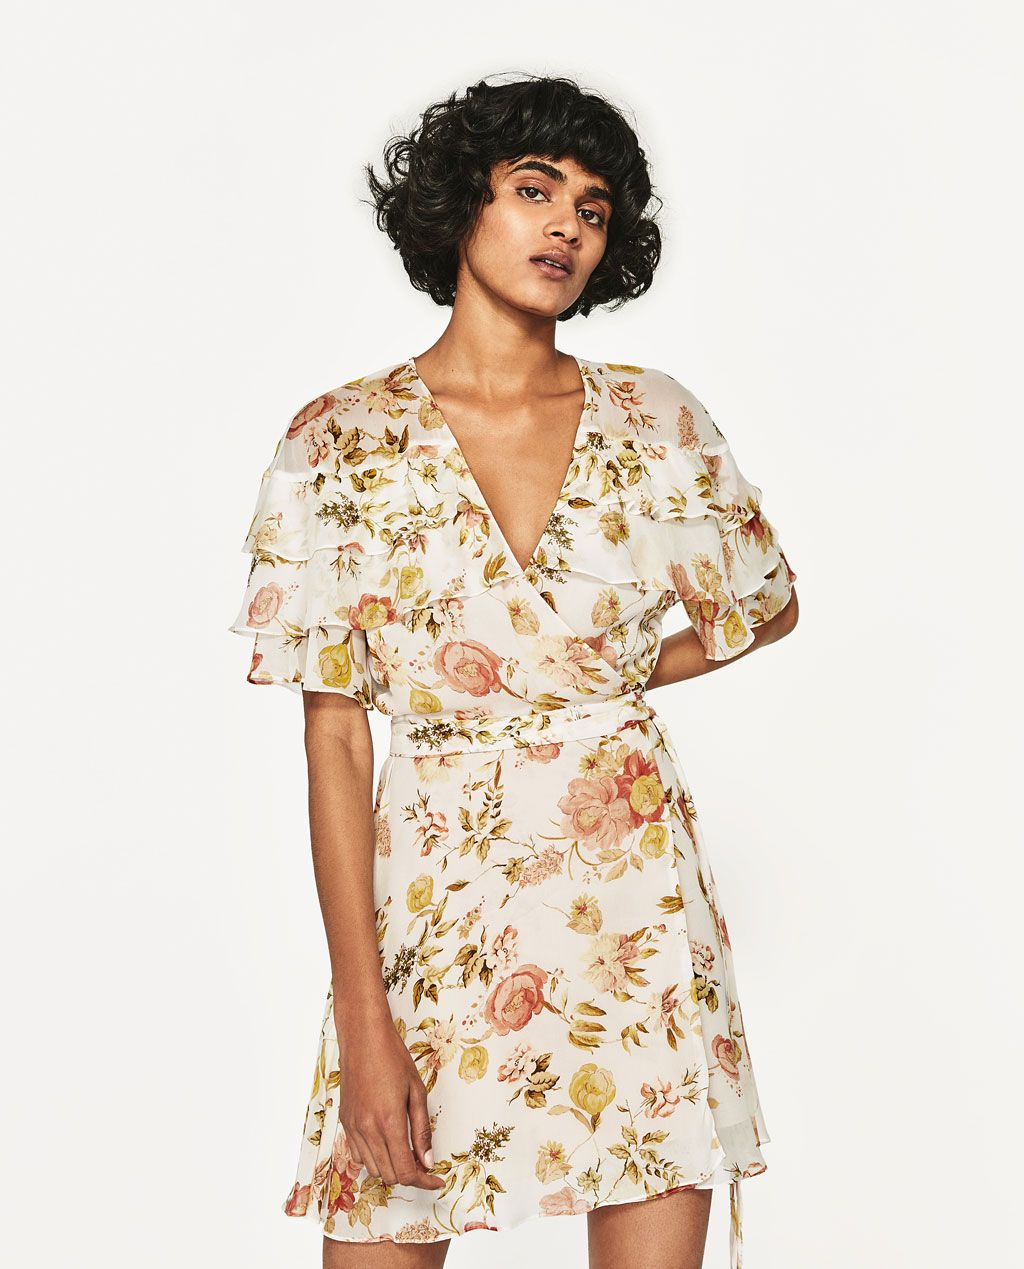 Mini dress with print view all dresses woman zara united states mini dress with print view all dresses woman zara united states ombrellifo Choice Image